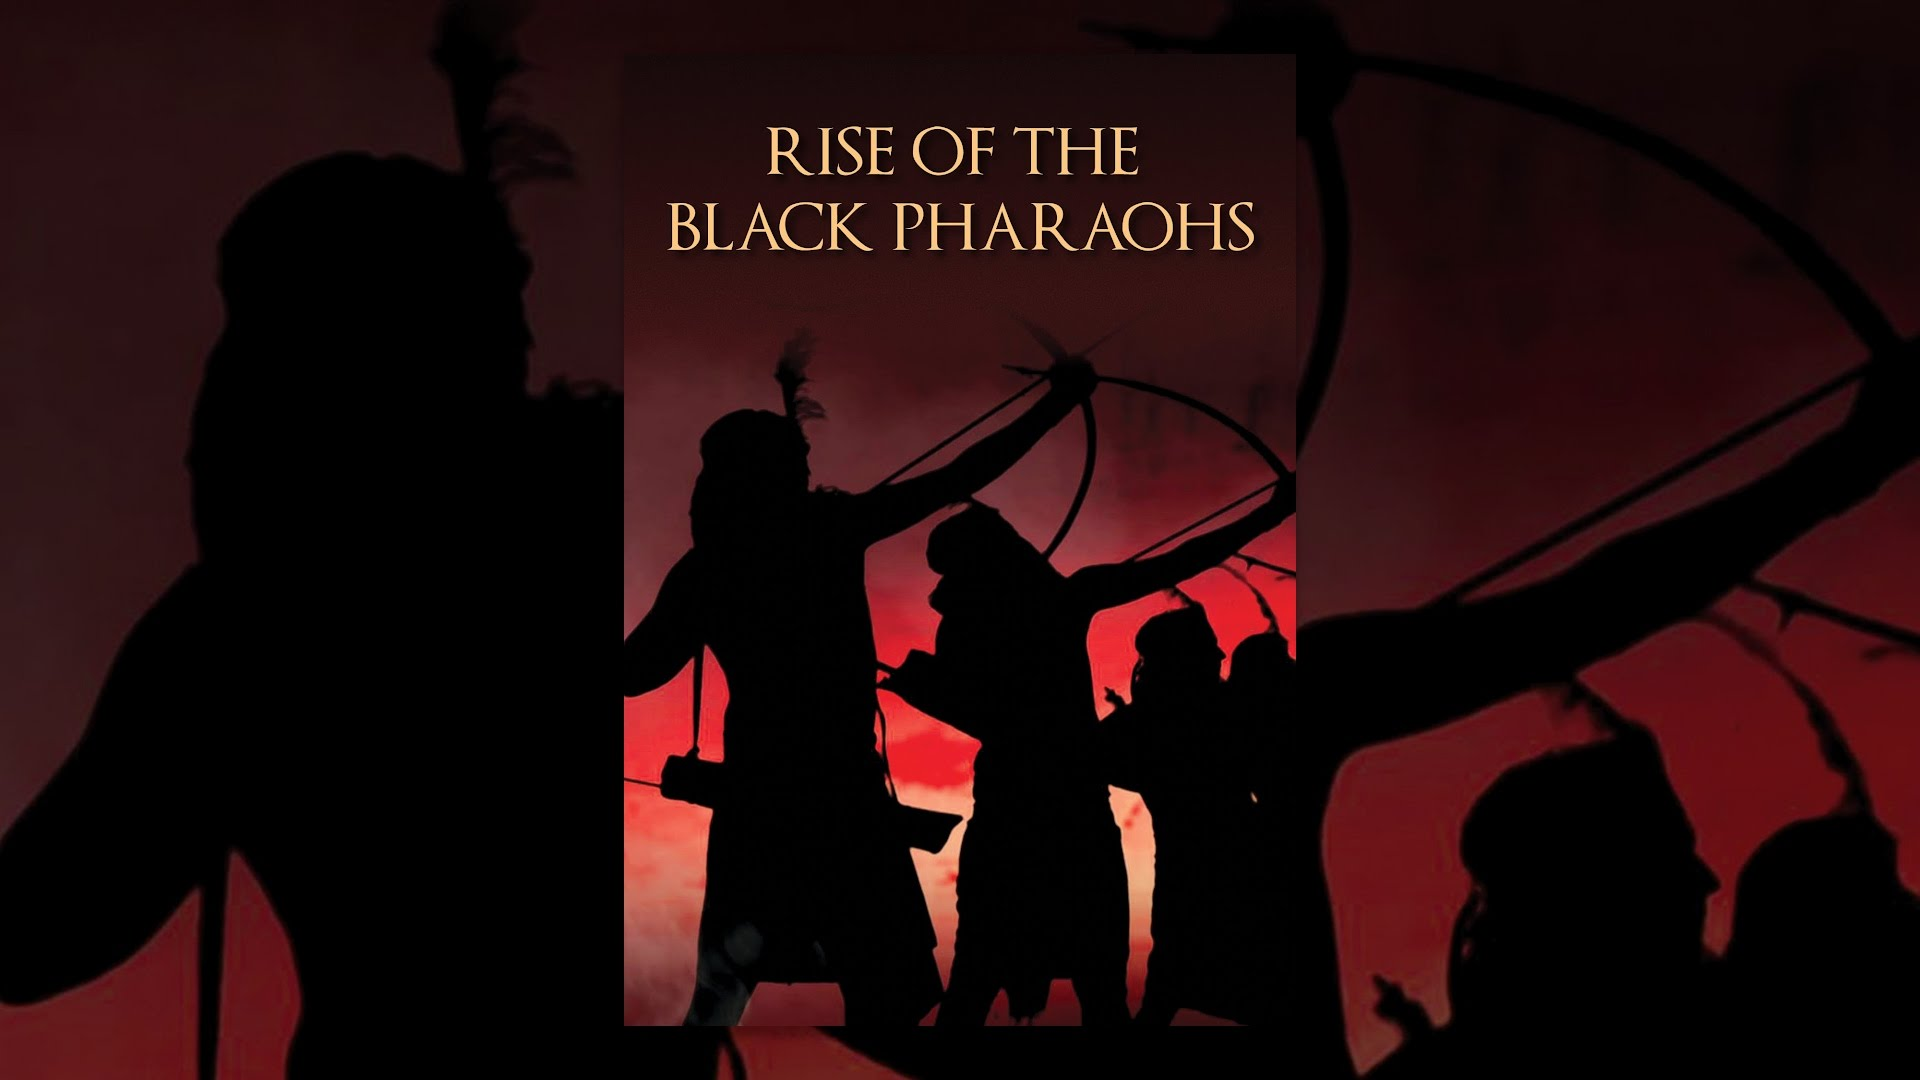 black pharaoh , black rule in egypt, African history